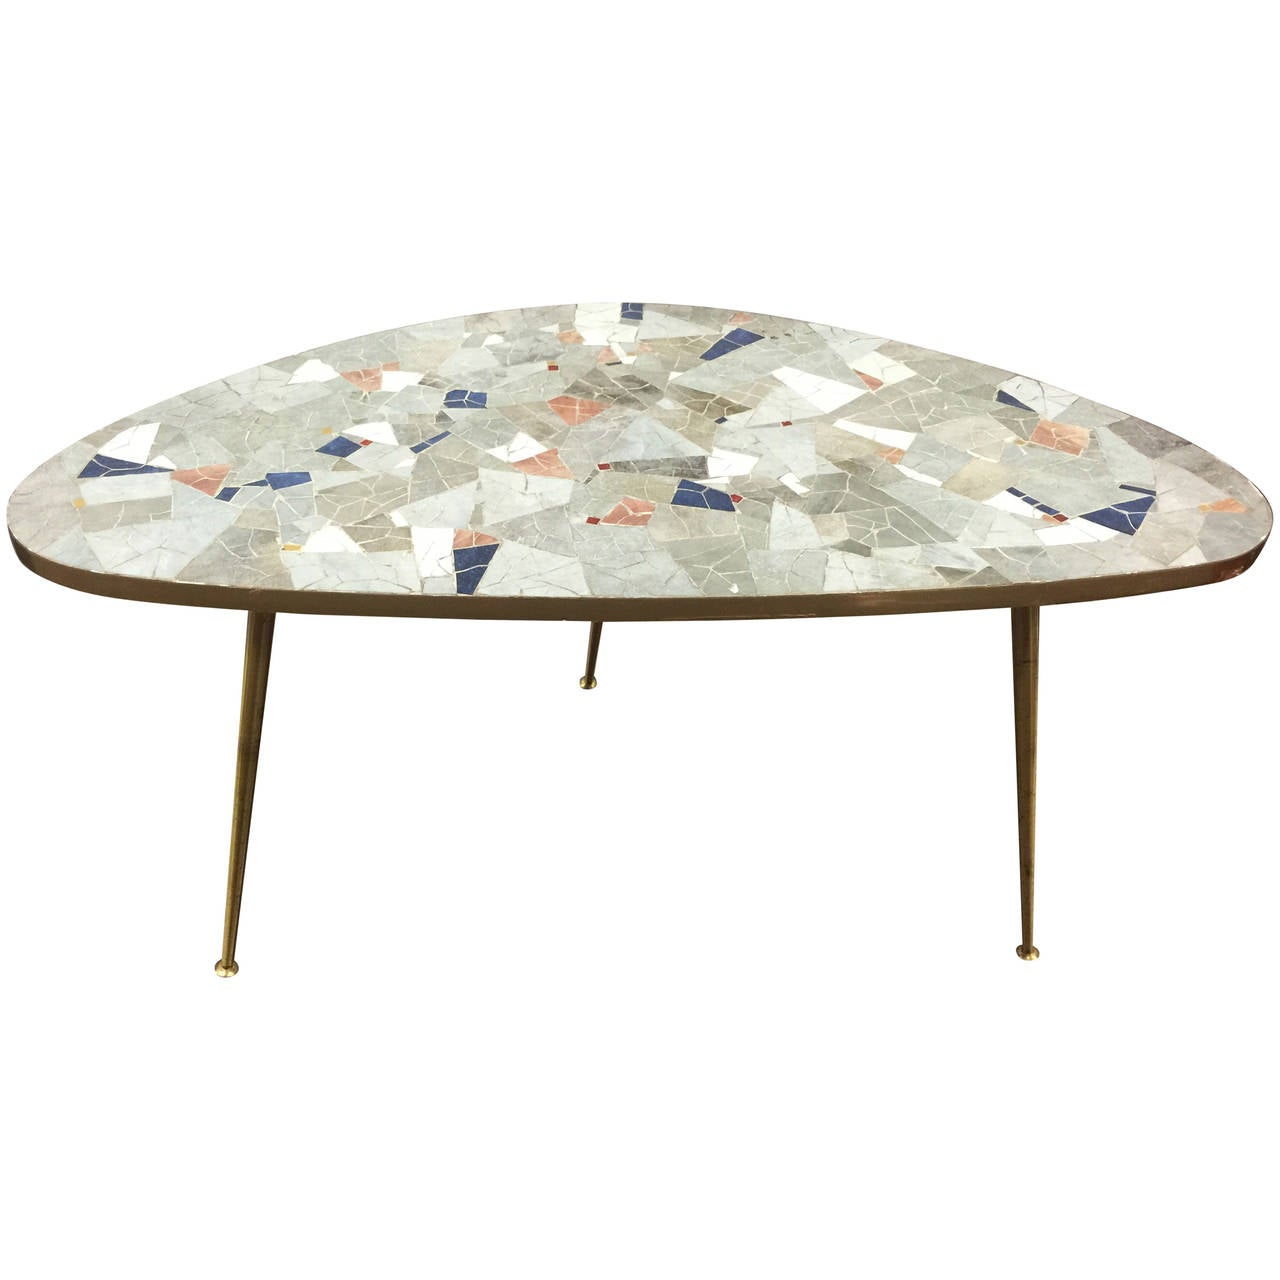 artco bell chairs yoga ball desk chair a midcentury kidney shaped mosaic tile table in the manner